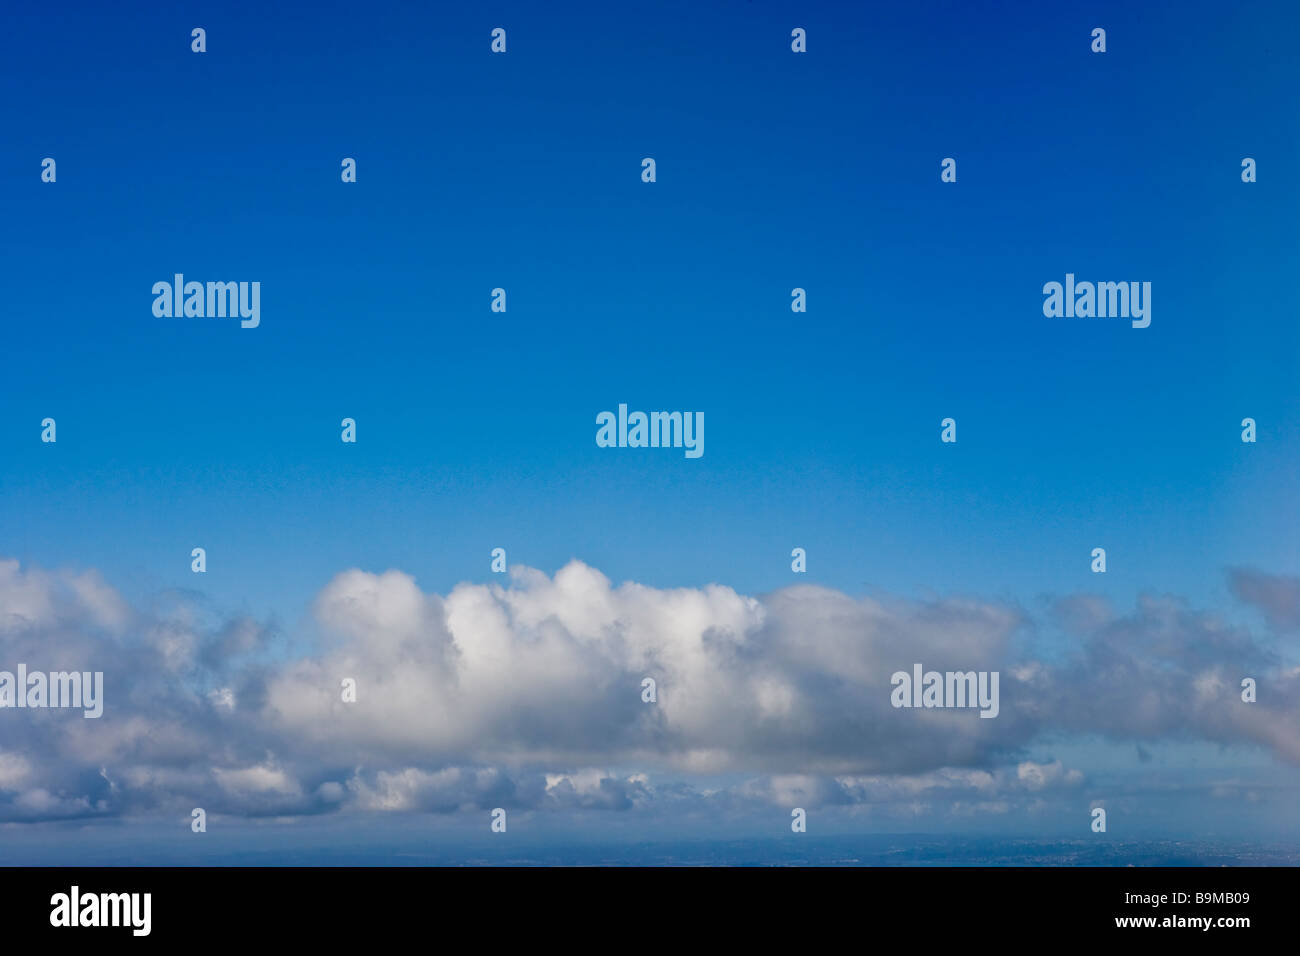 vivid blue shy with clouds from airplane - Stock Image